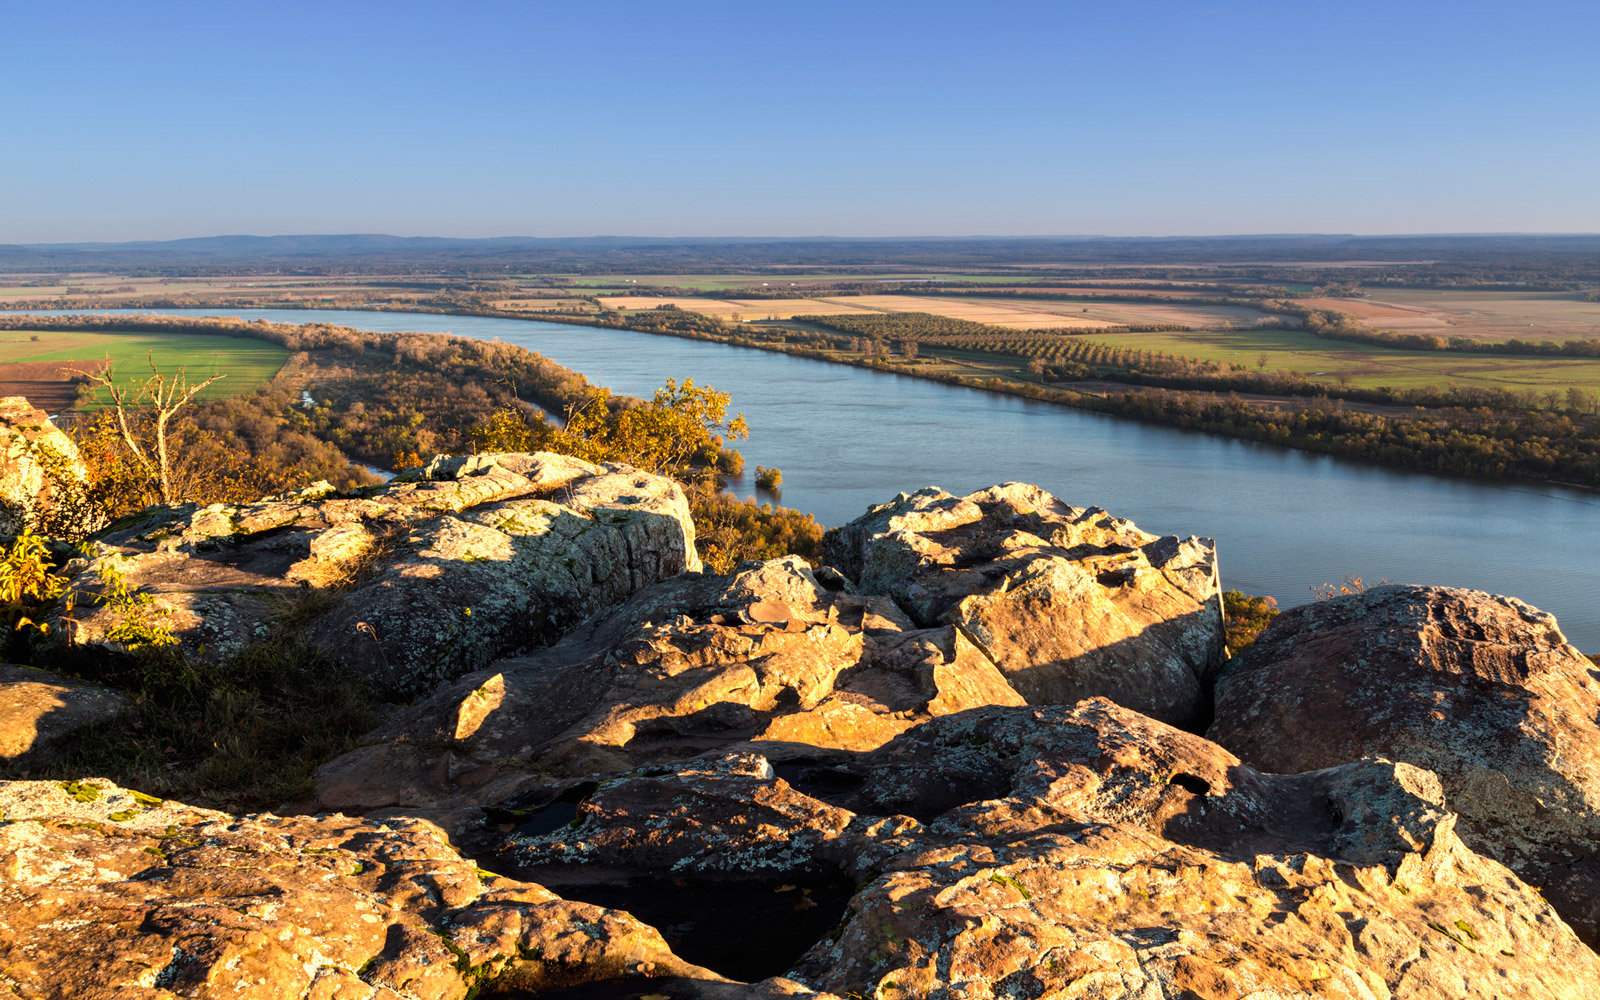 Early morning light and a breathtaking view of the Arkansas River from Stout's Point.